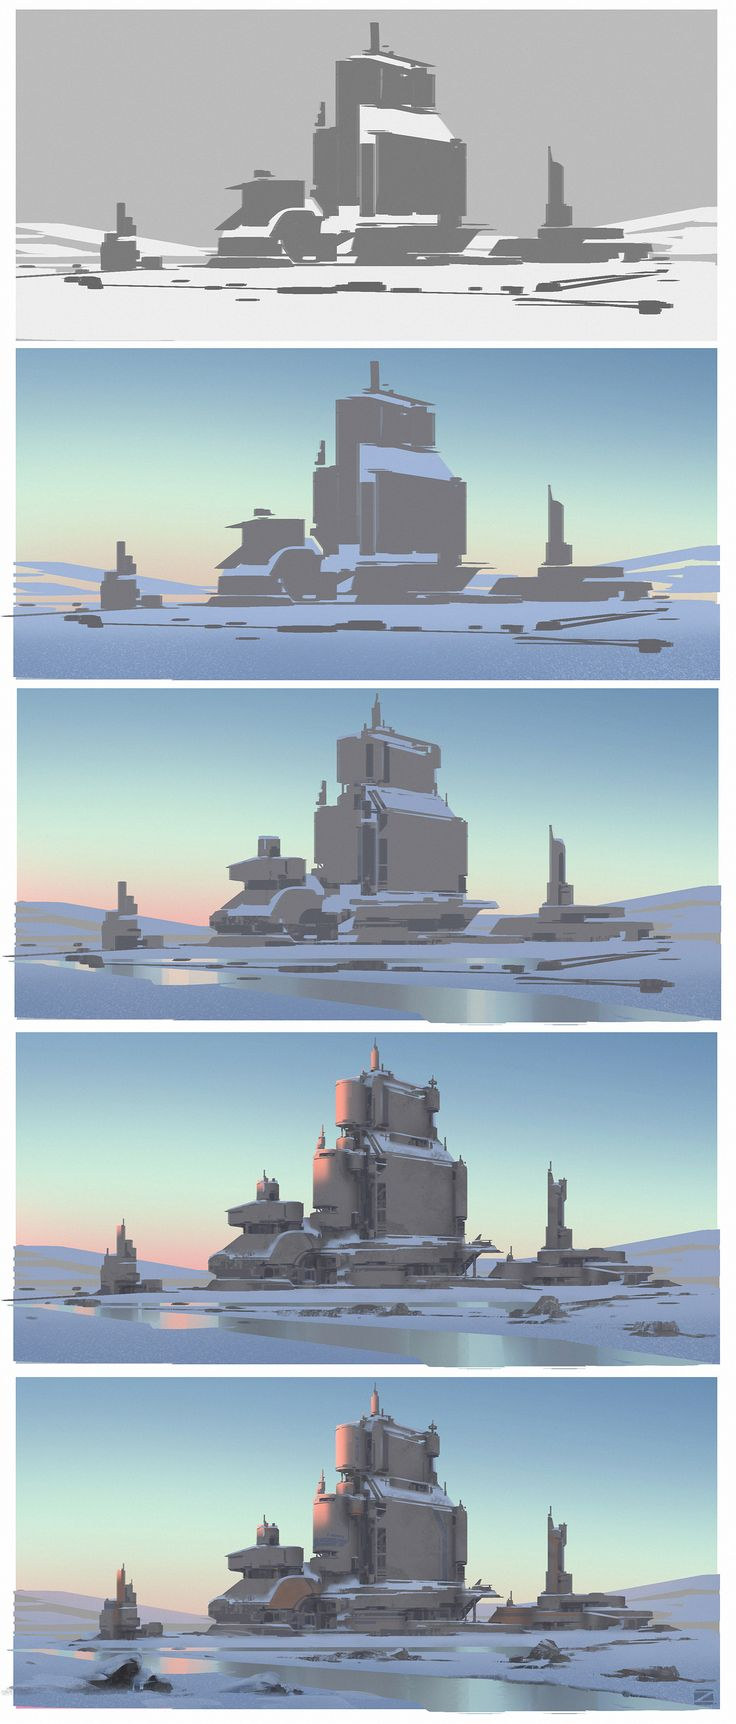 ArtStation - Abandoned facilities, step by step, process painting, how to paint a cold scene, background painting